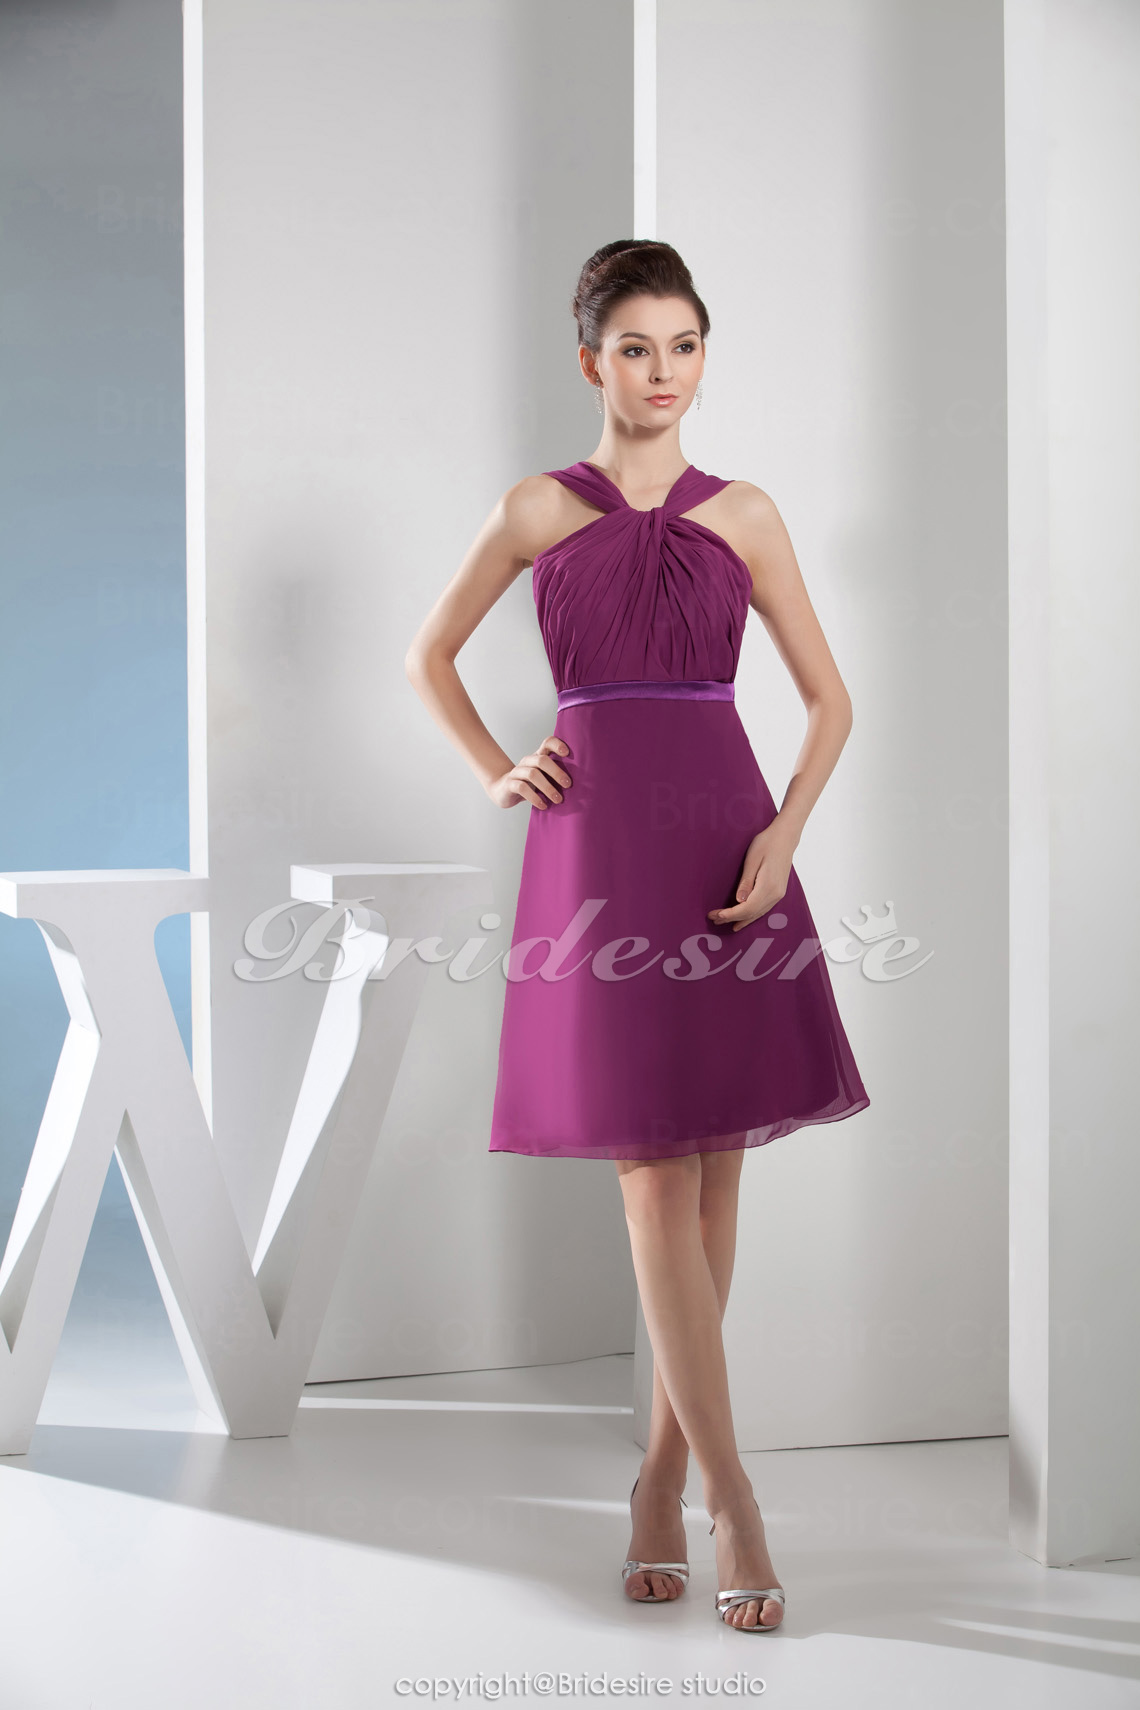 A-line Halter Knee-length Sleeveless Chiffon Bridesmaid Dress